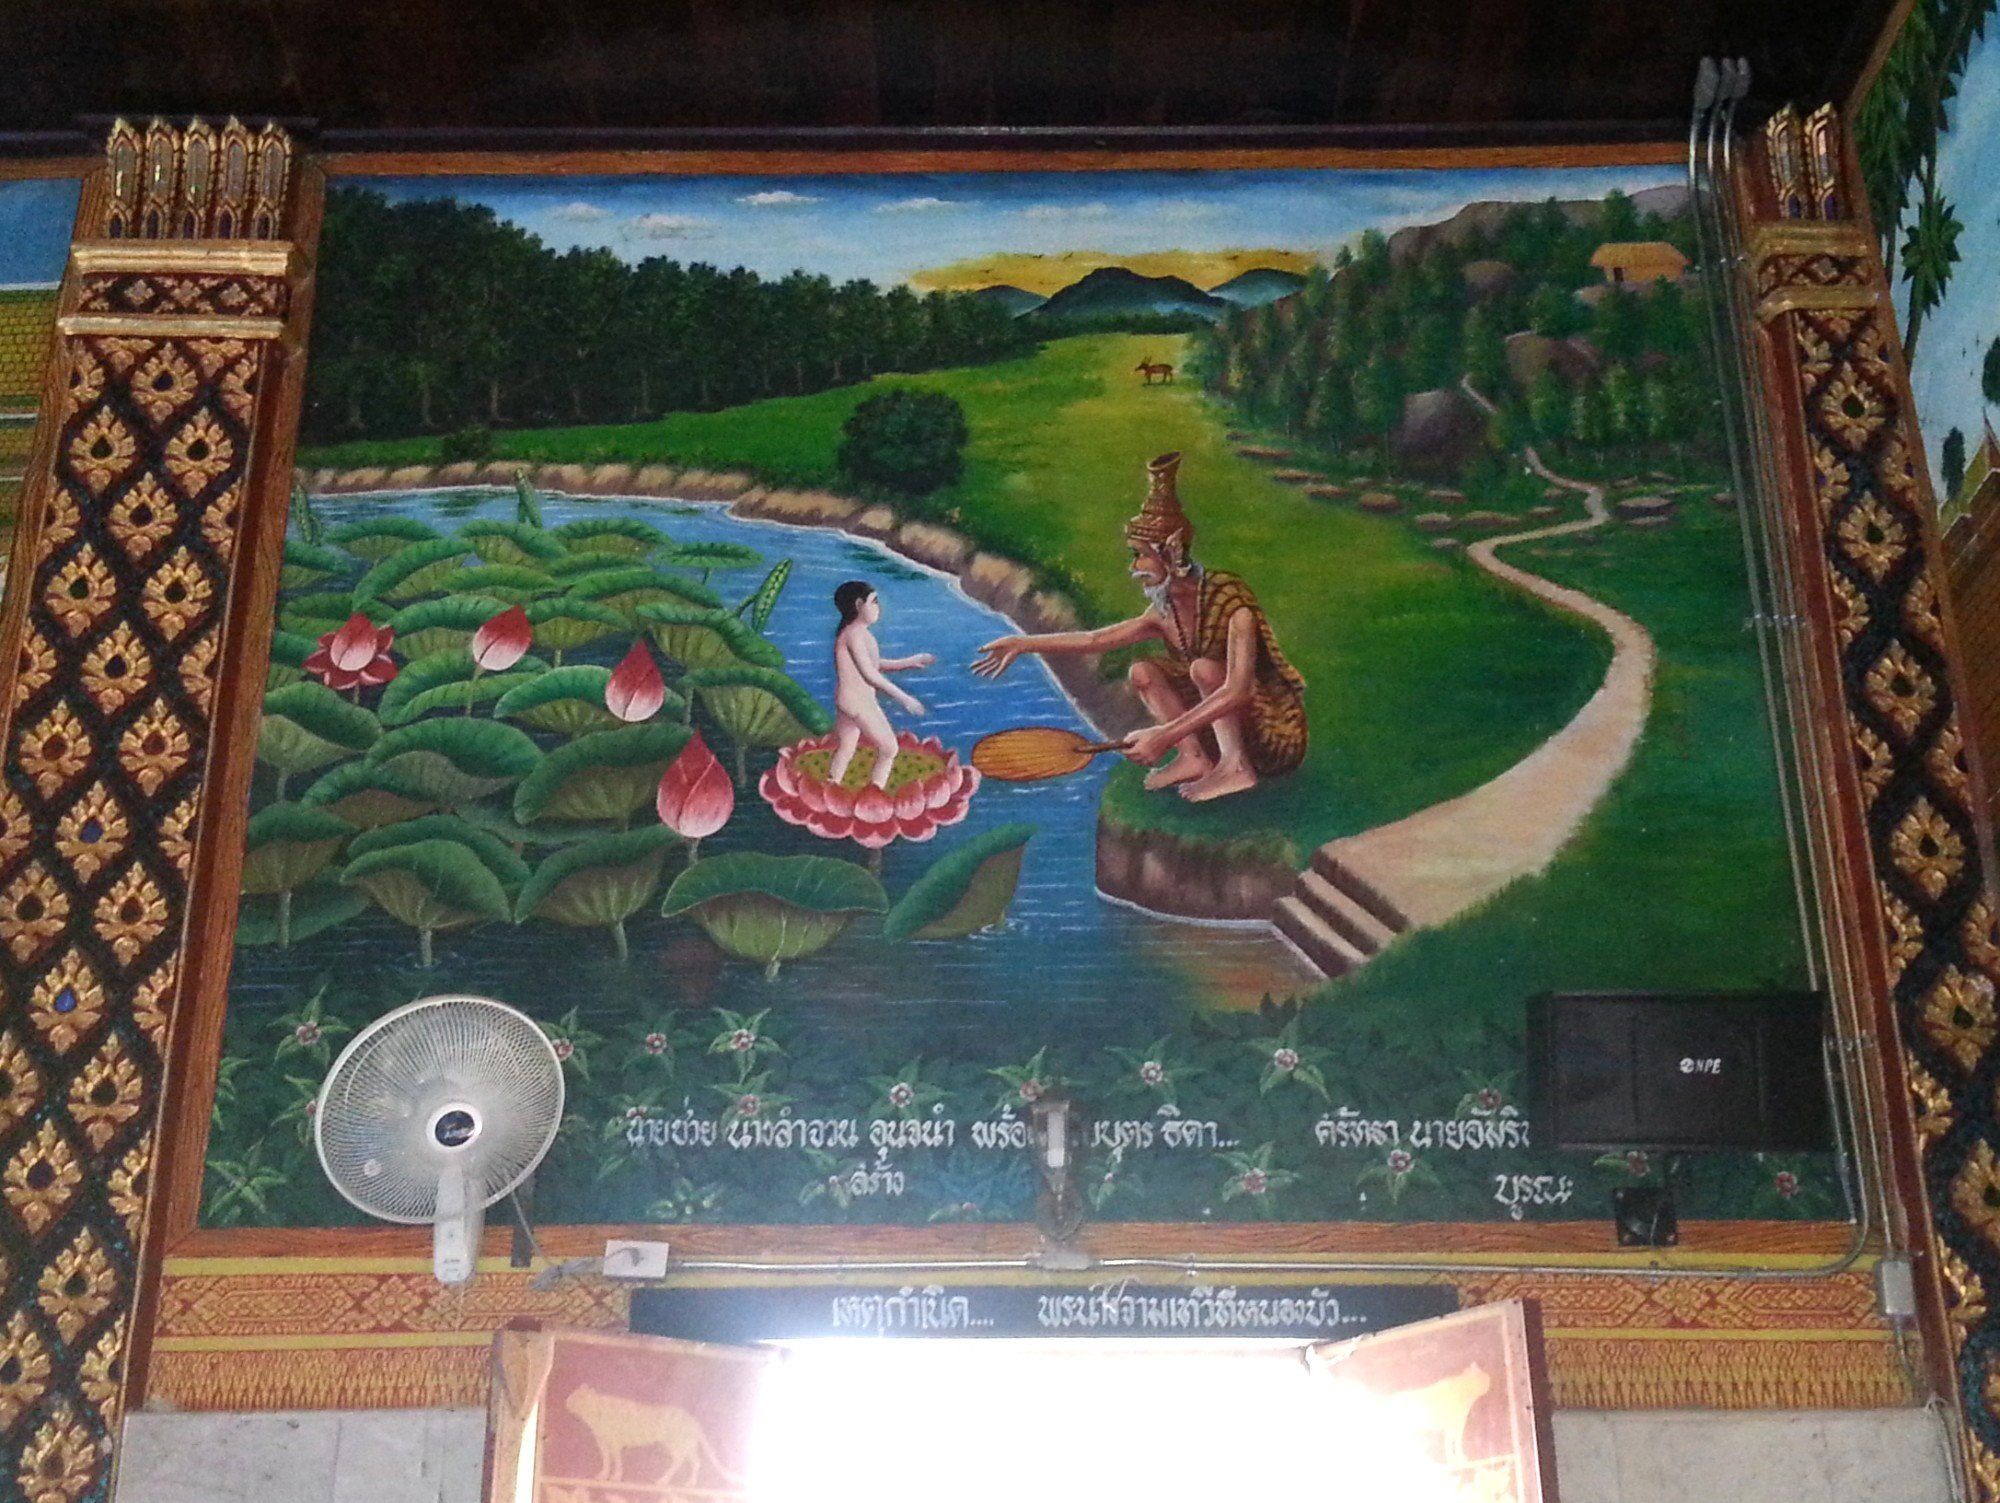 Wall murals depicting scenes from the life of Queen Chammathewi